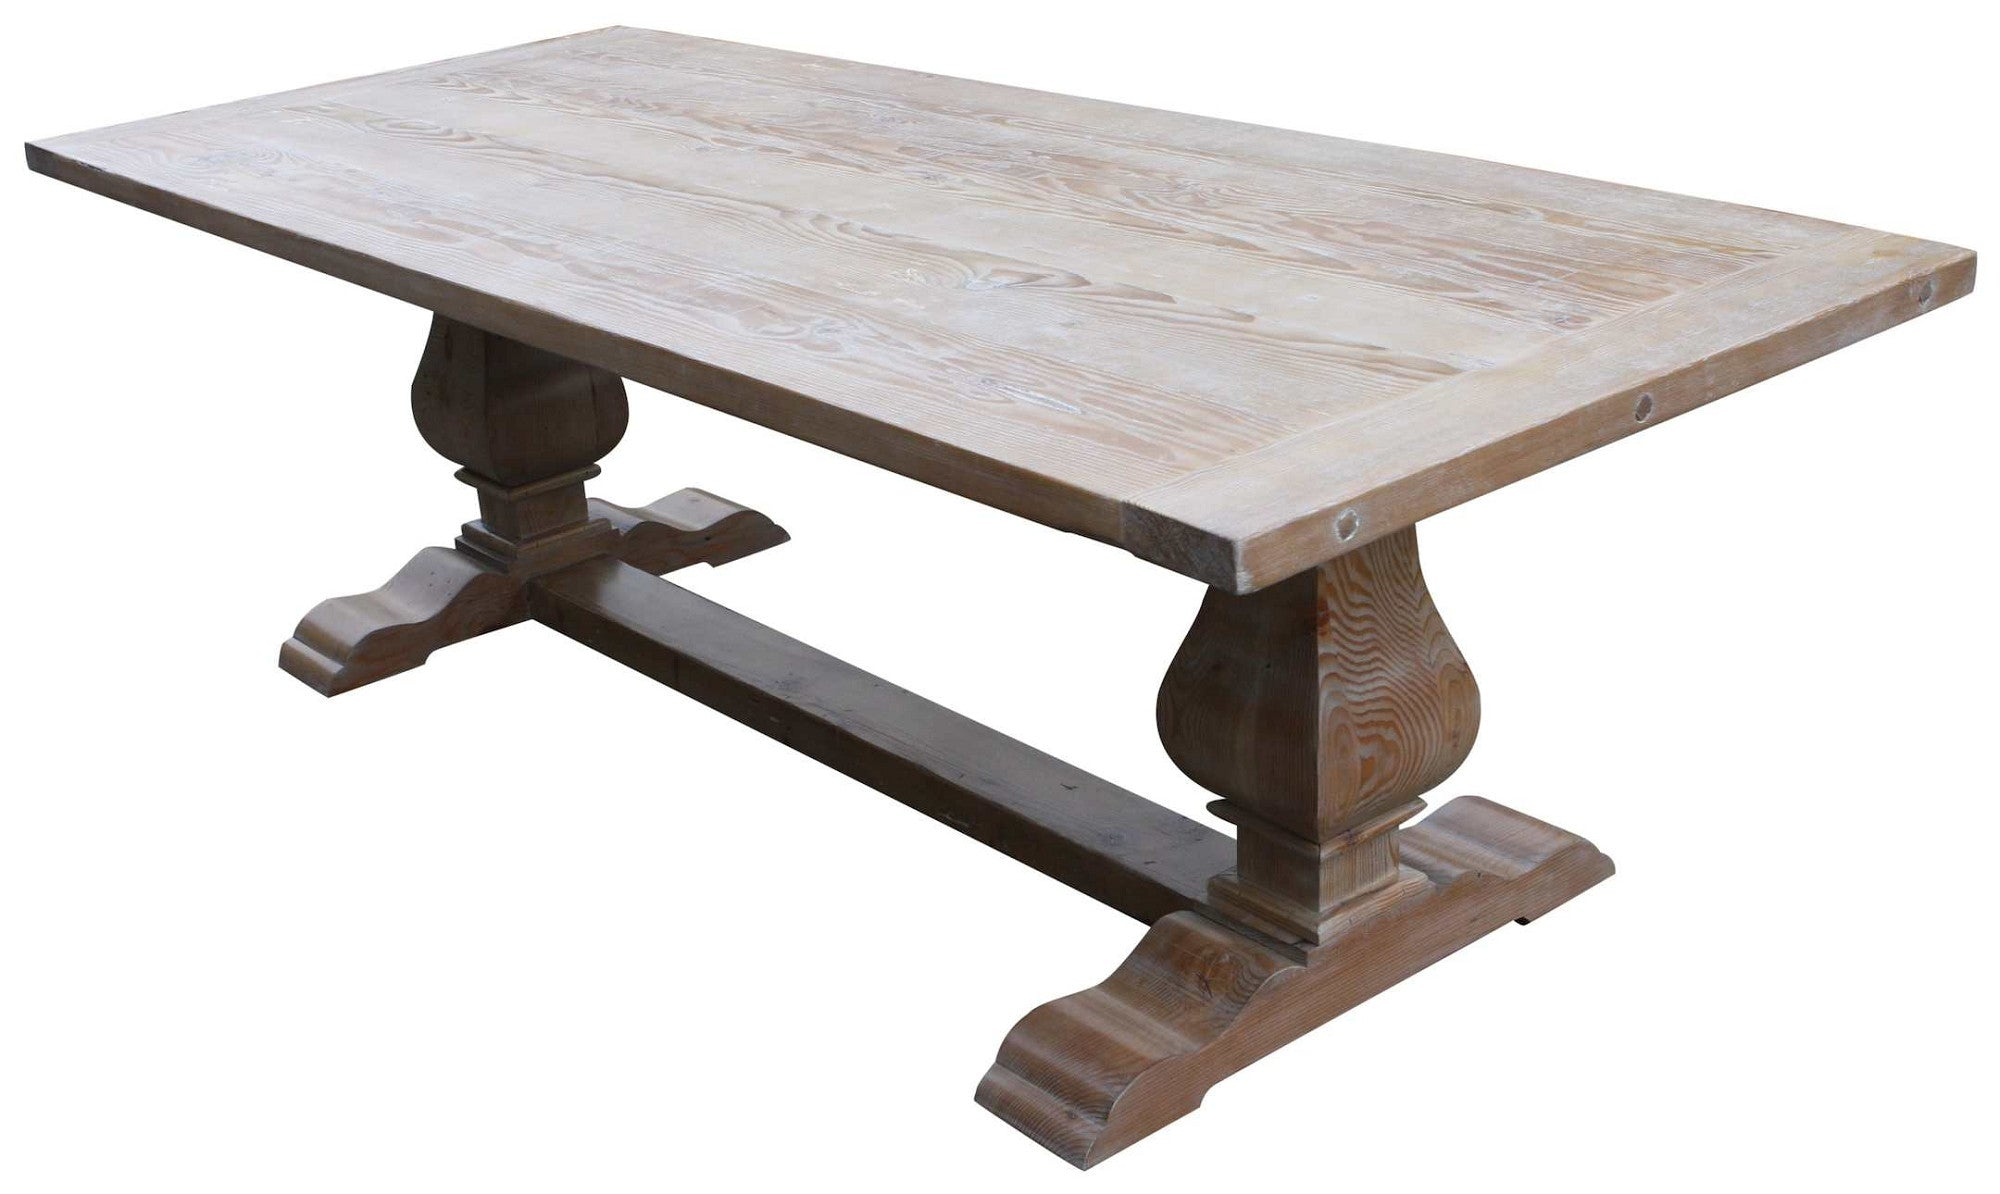 Custom Dining Tables Handmade From Traditional Trestle Tables Leaf - Bleached wood dining table